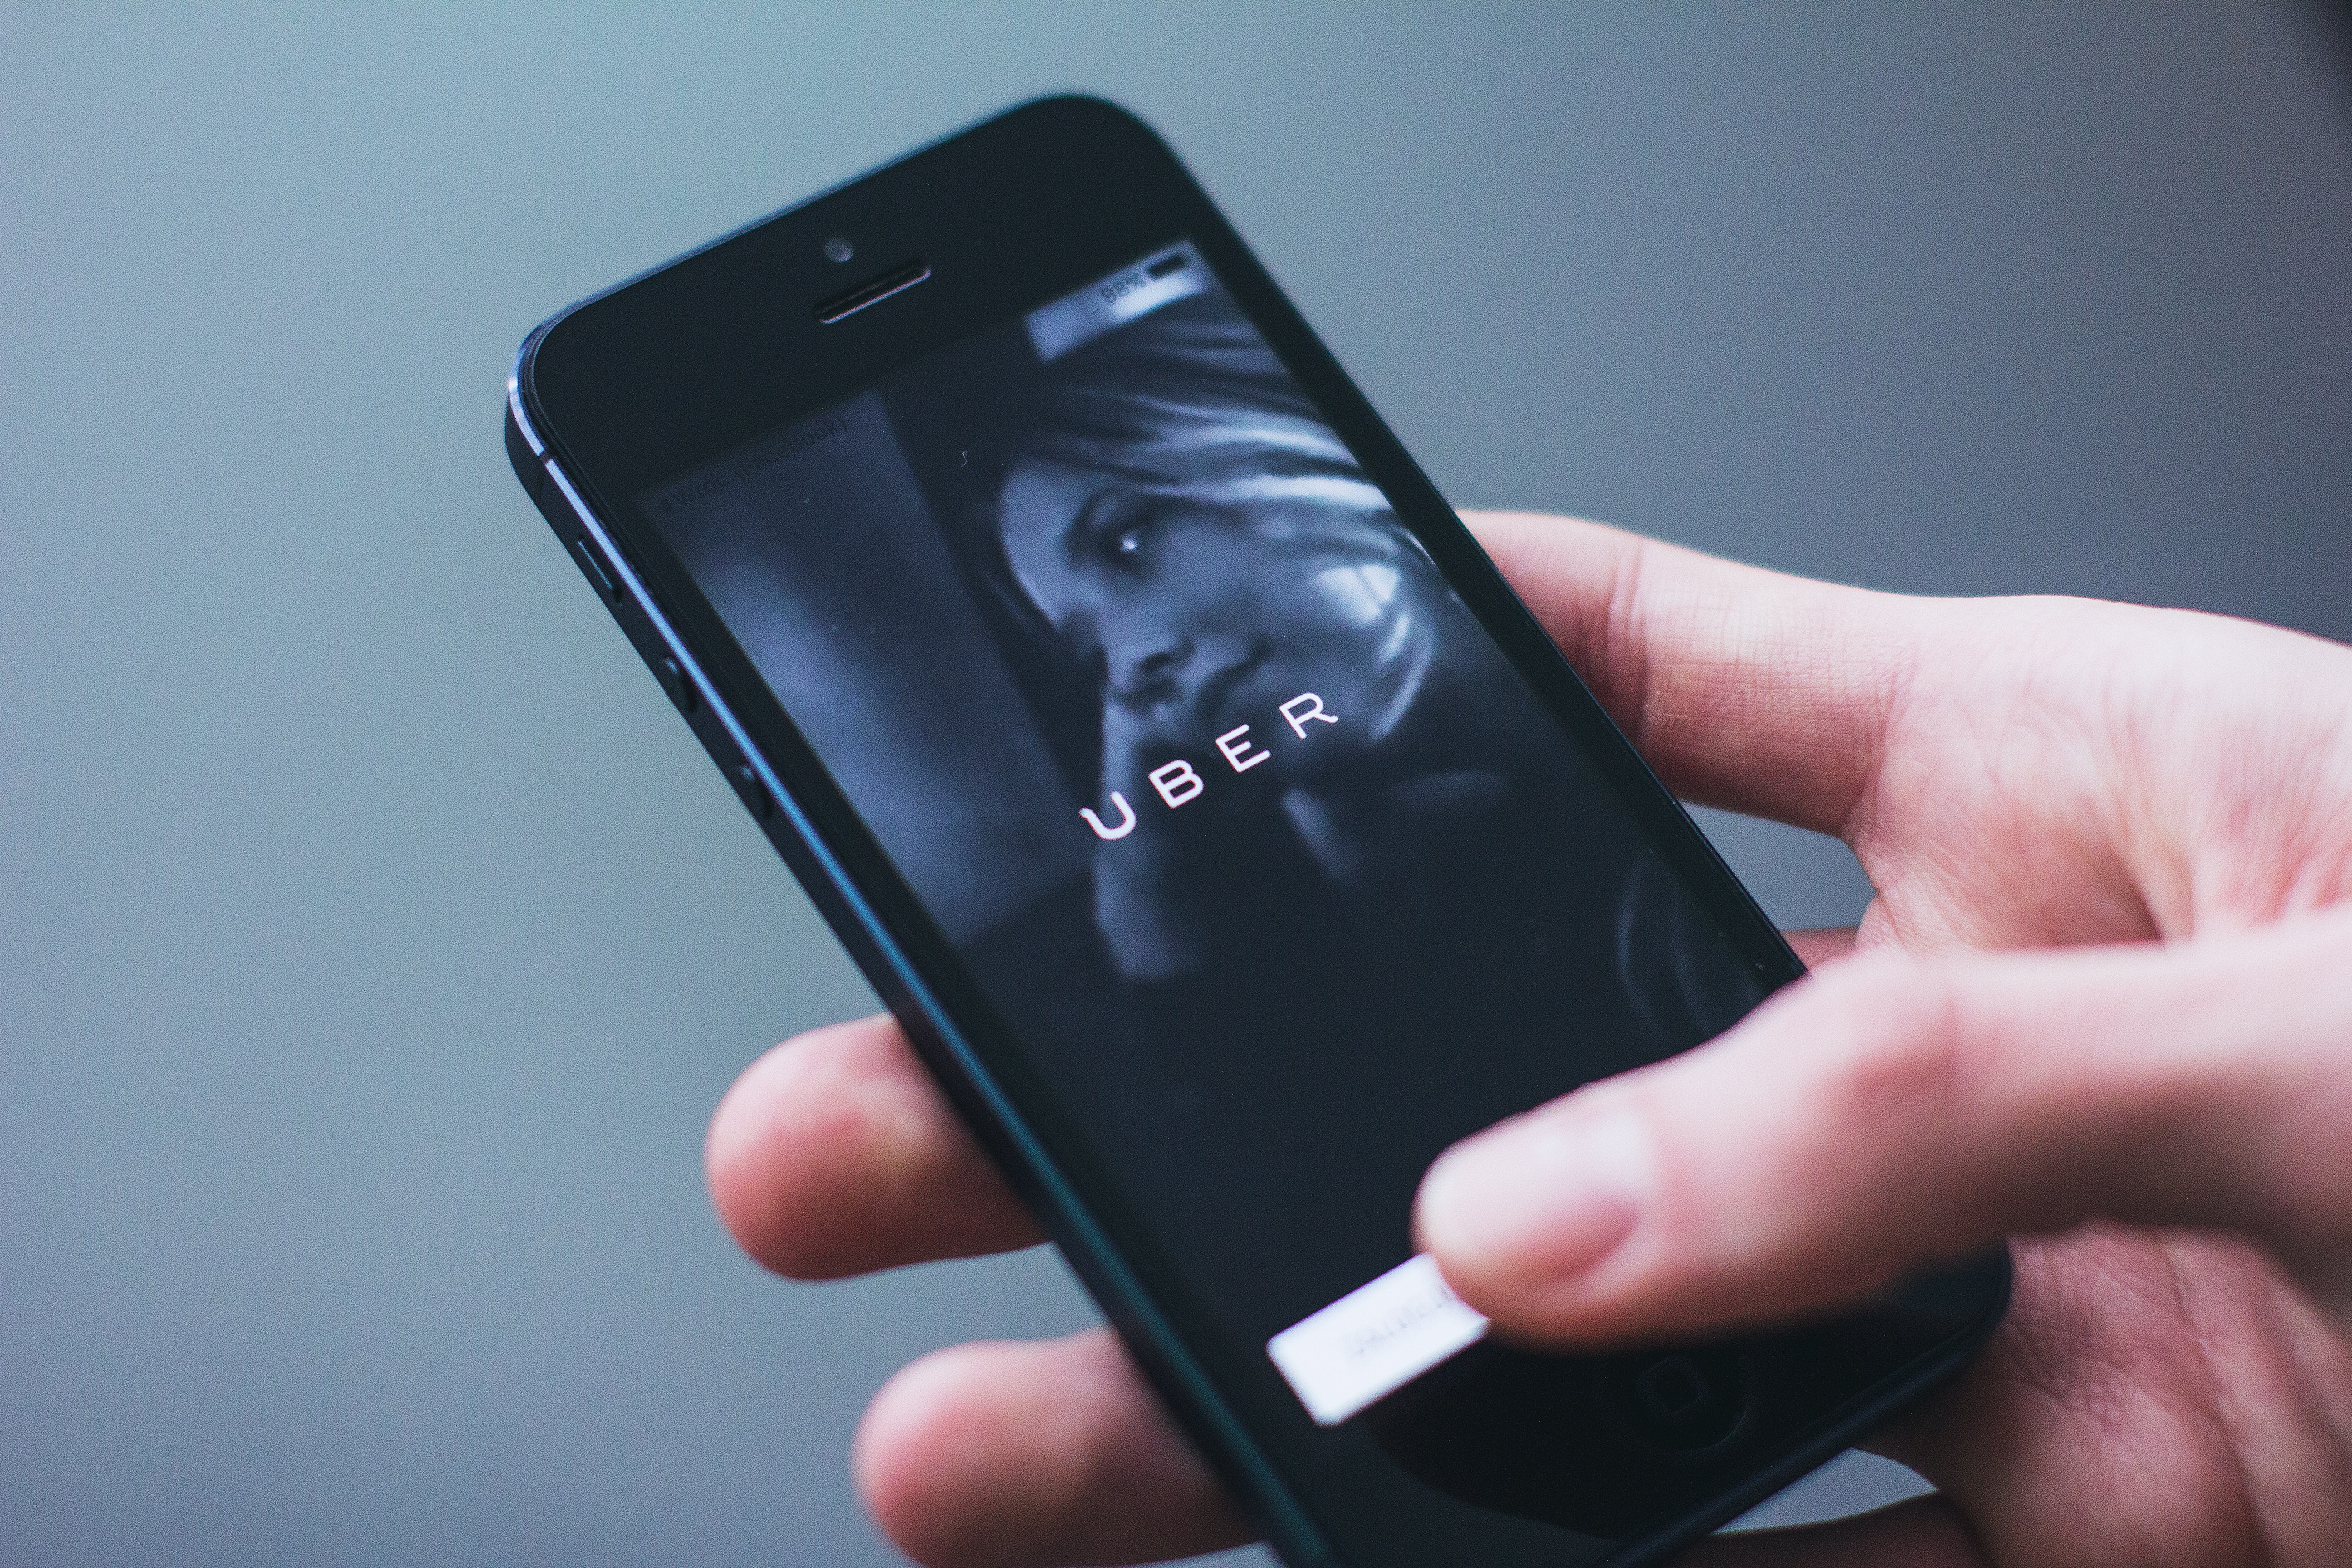 Passenger Files Suit Against UBER After Driver Uploads Explicit Photos from Phone to Social Media